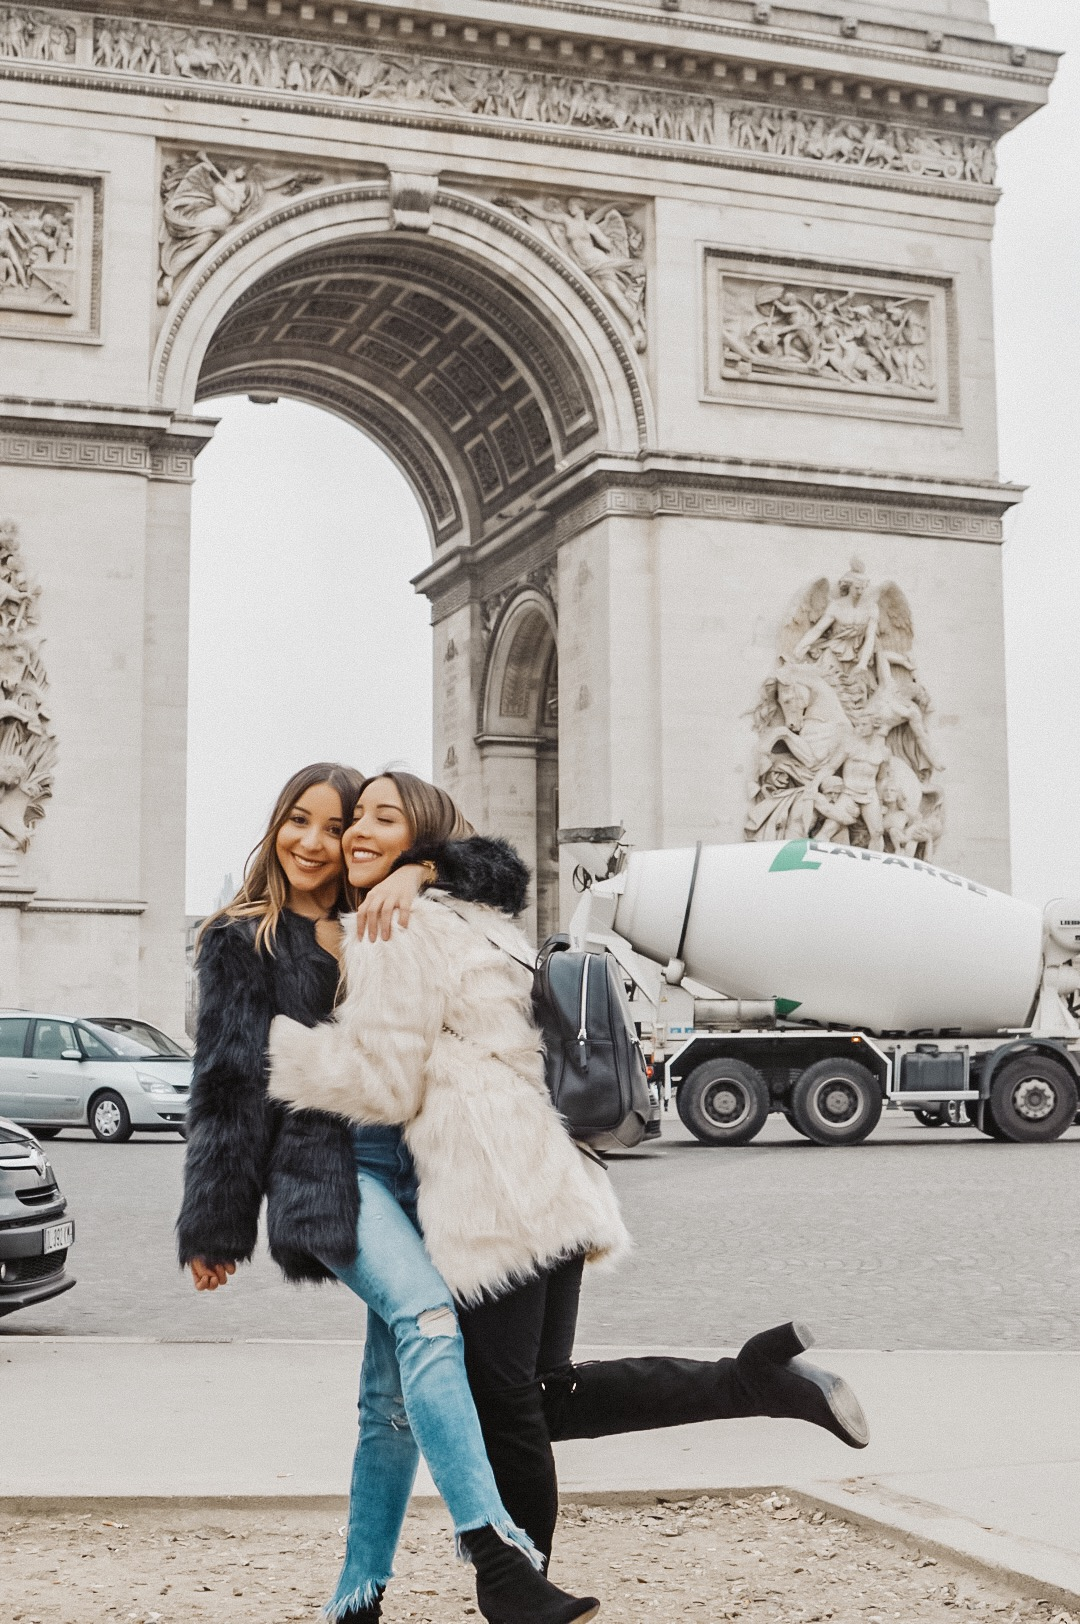 Arc de Triumf - The Twins of Travel